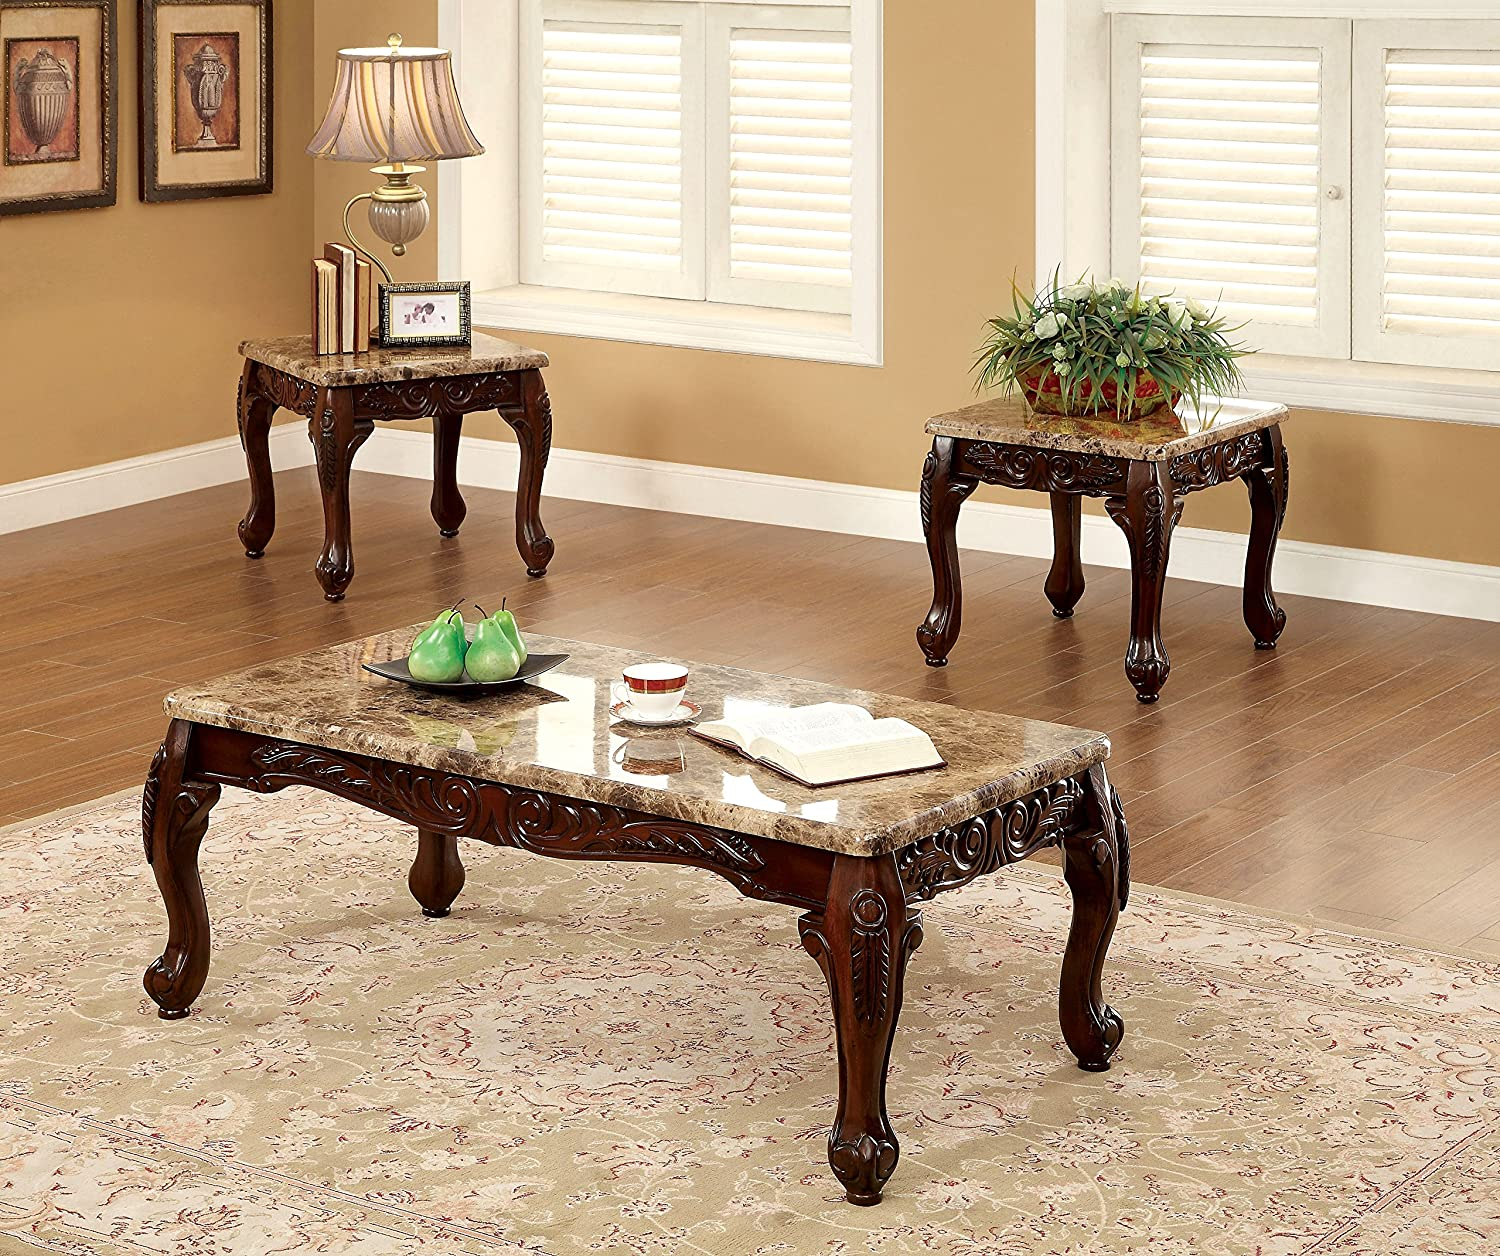 Amazon.com Furniture of America Beltran 3-Piece Traditional Faux Marble Top Accent Tables Set Dark Oak Kitchen u0026 Dining & Amazon.com: Furniture of America Beltran 3-Piece Traditional Faux ...